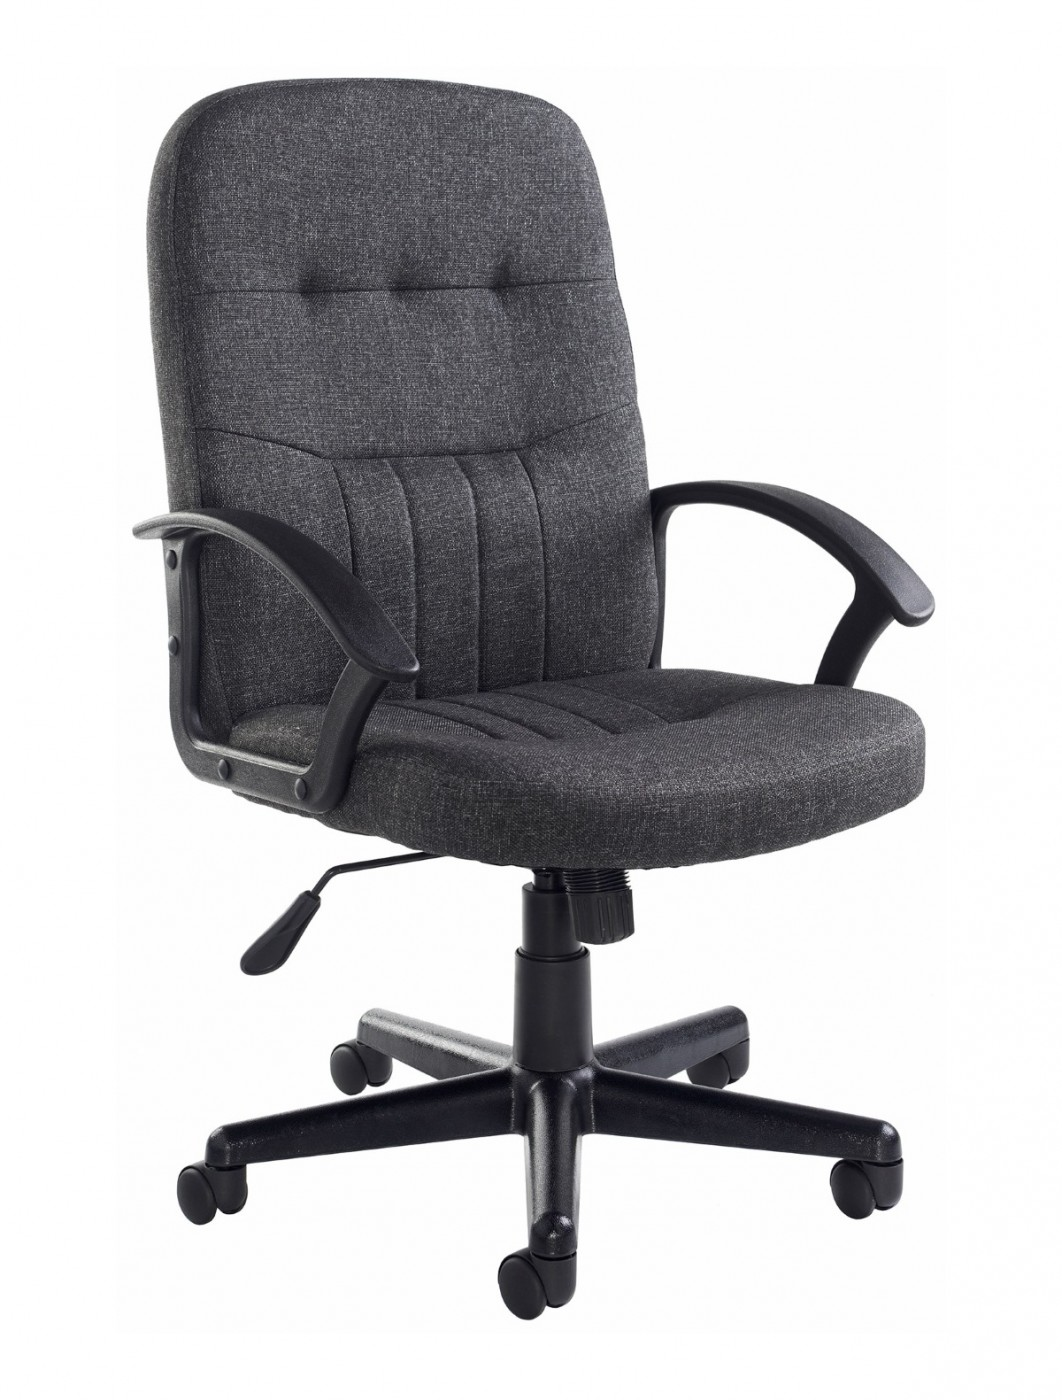 Cloth Office Chairs Office Chairs Cavalier Charcoal Office Chair Cav300t1 C